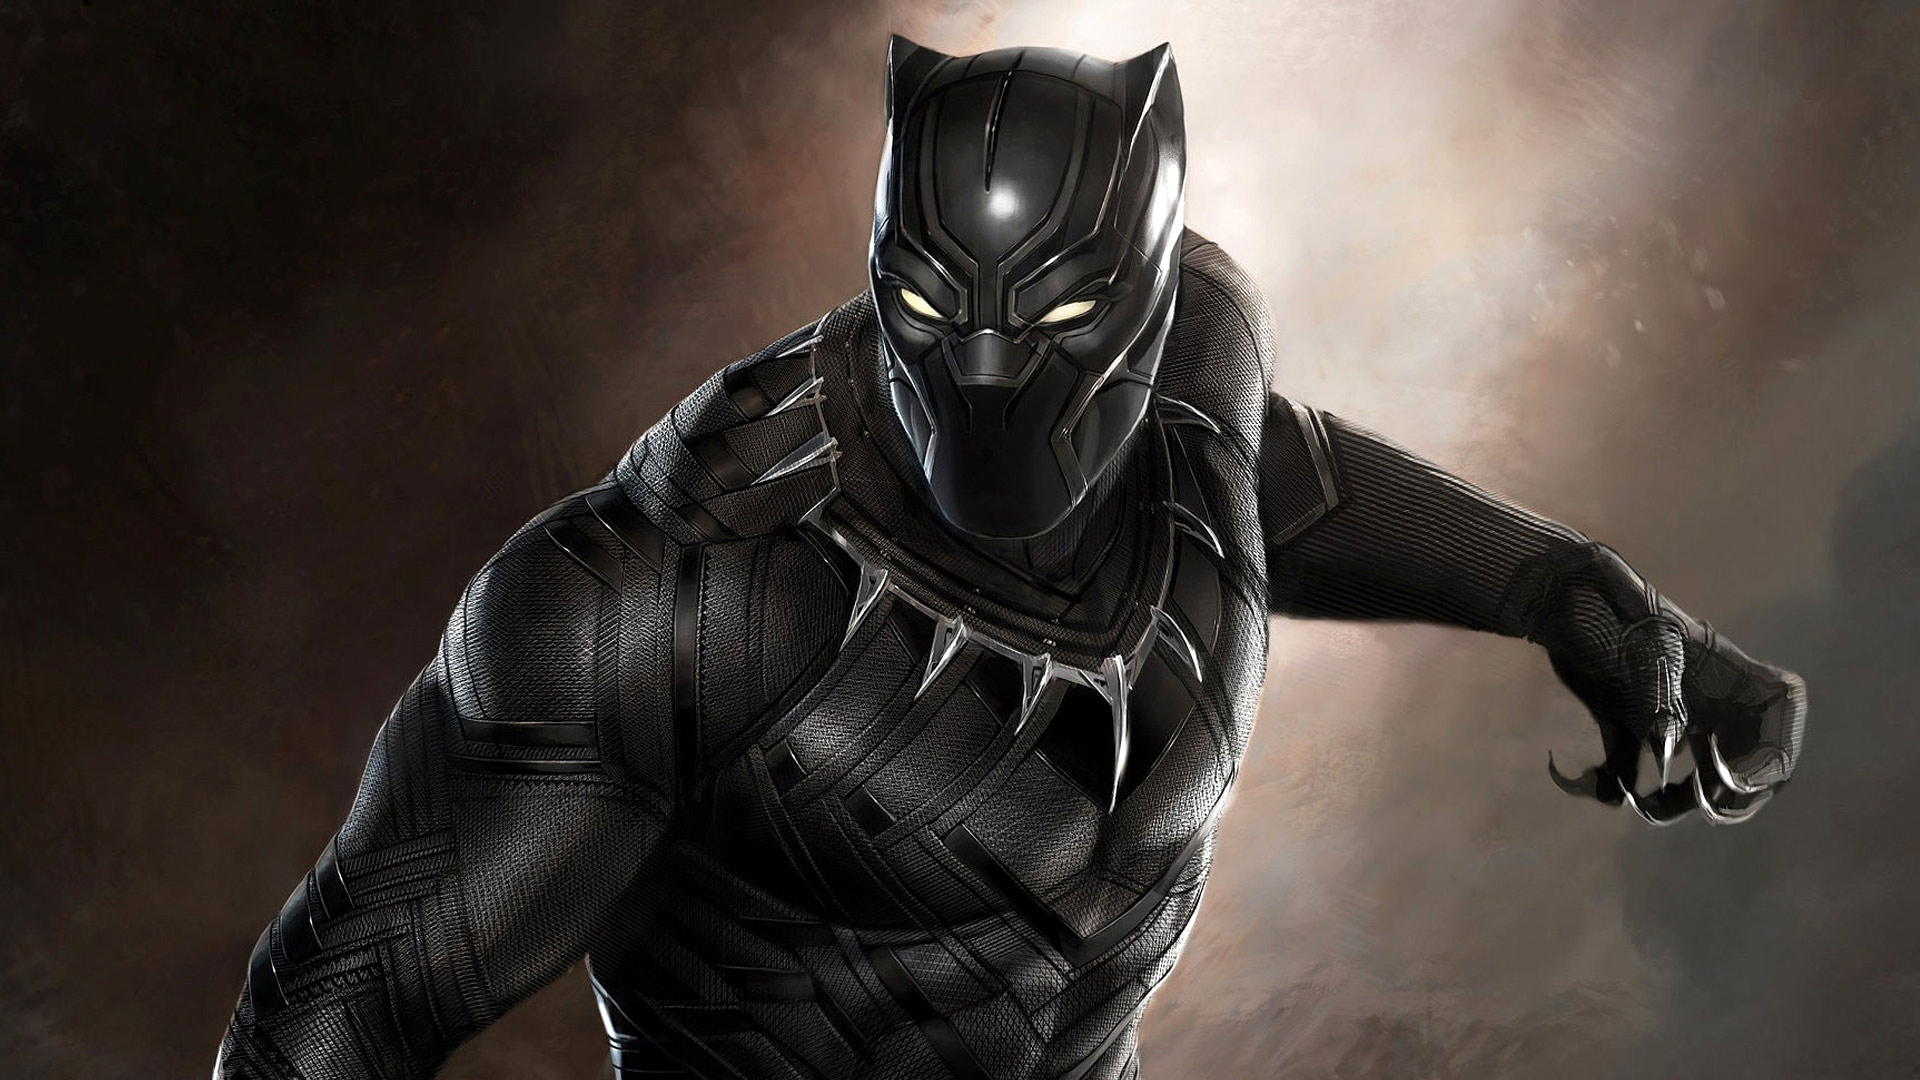 Download Black Panther Wallpaper For iPhone iPad 1920x1080